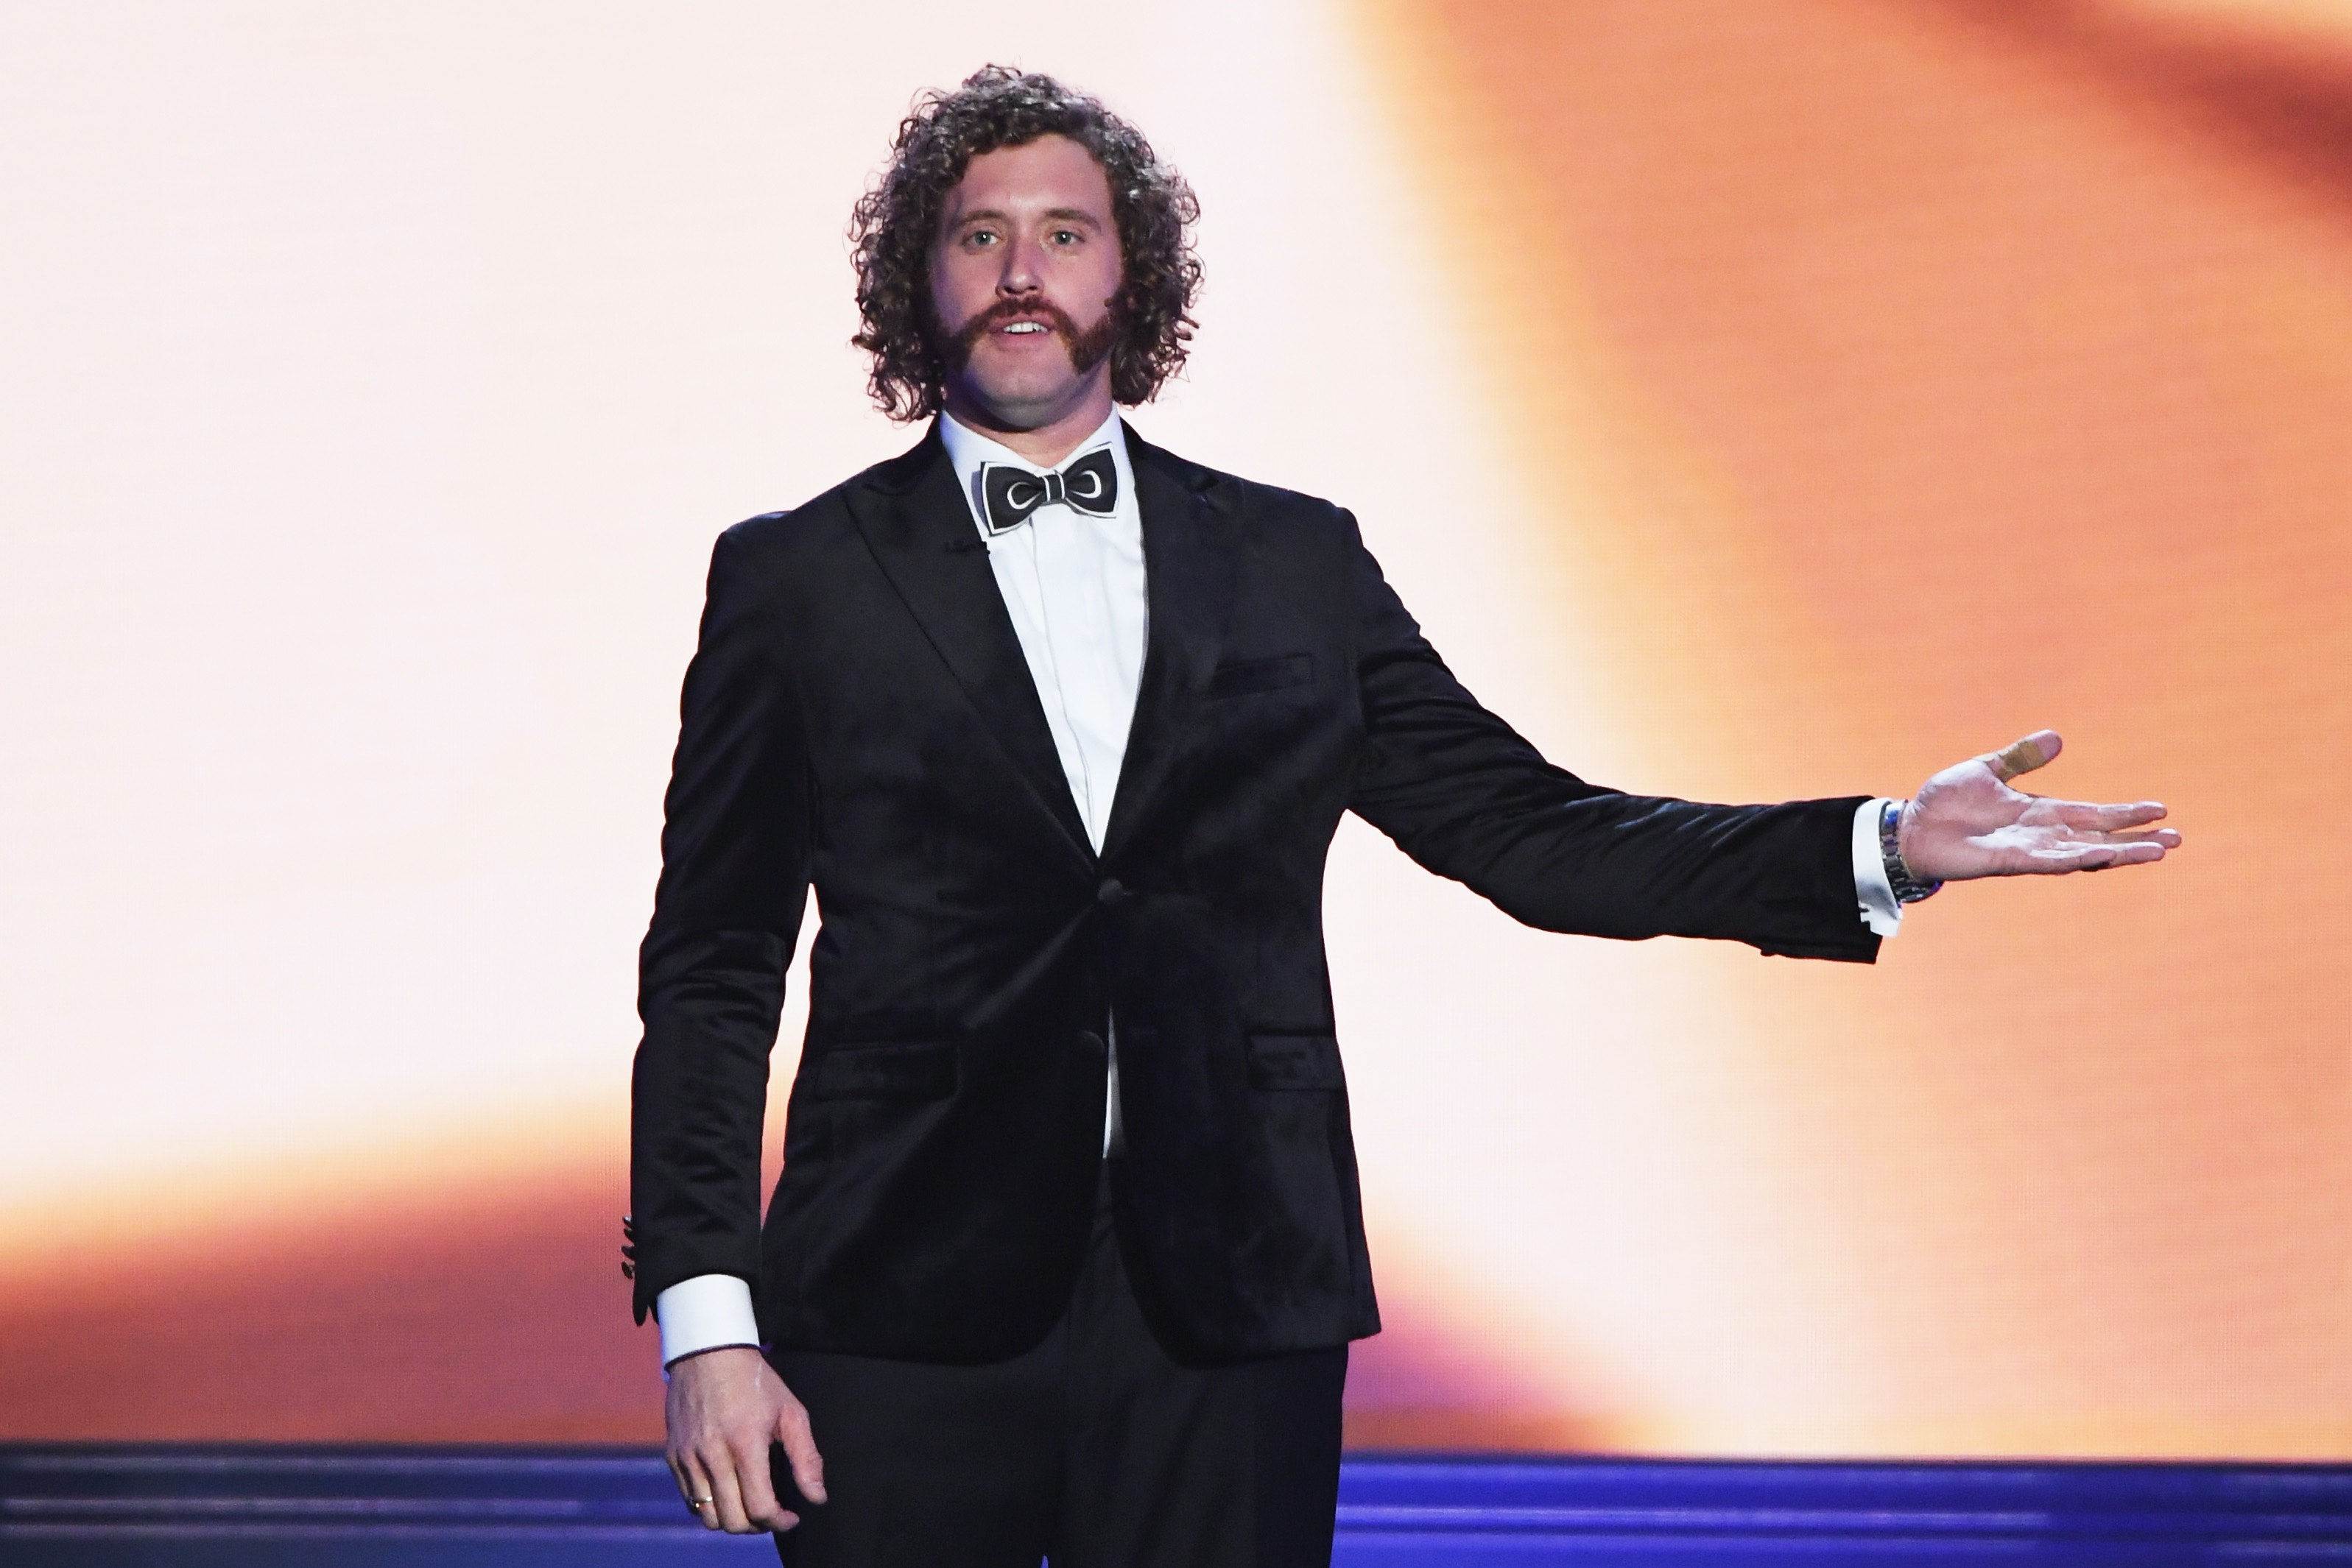 TJ Miller's The Gorburger Show canceled by Comedy Central